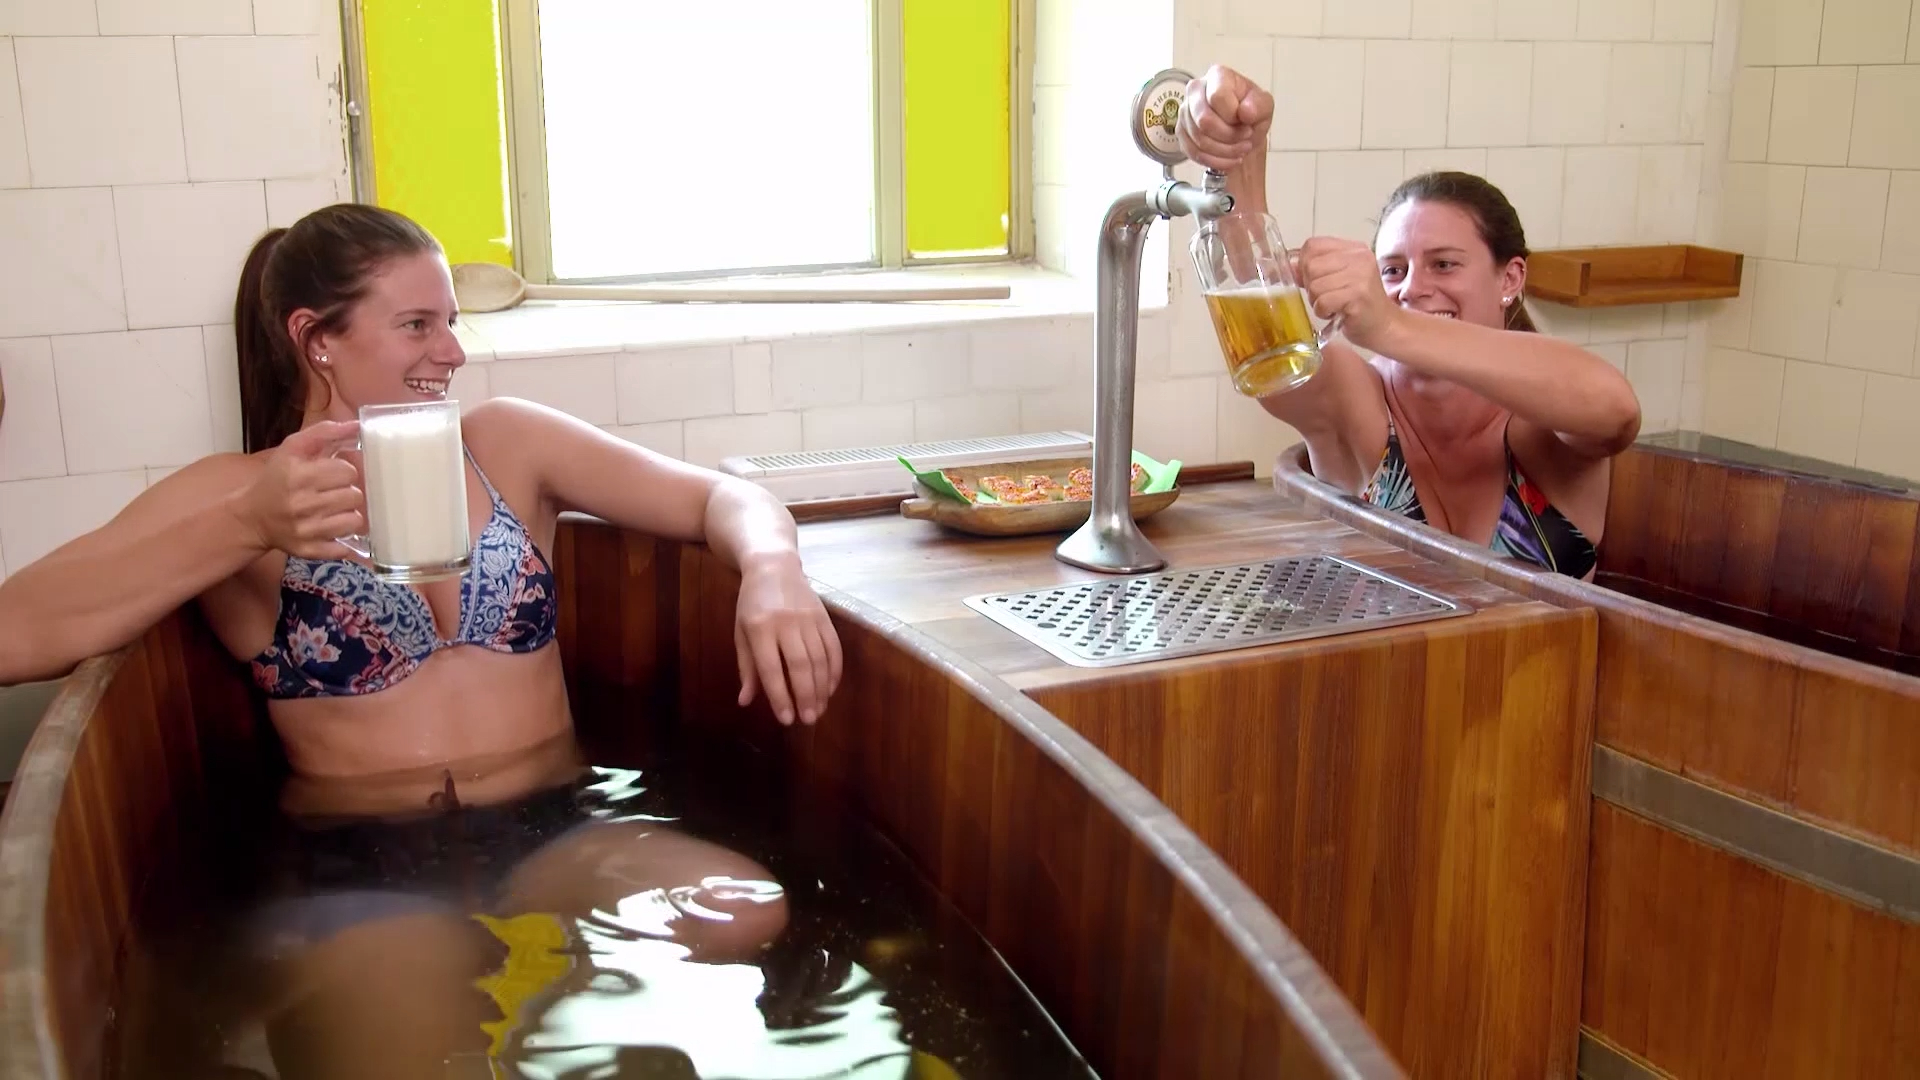 Stack and Mel have a 'beer bath' with unlimited beer on tap